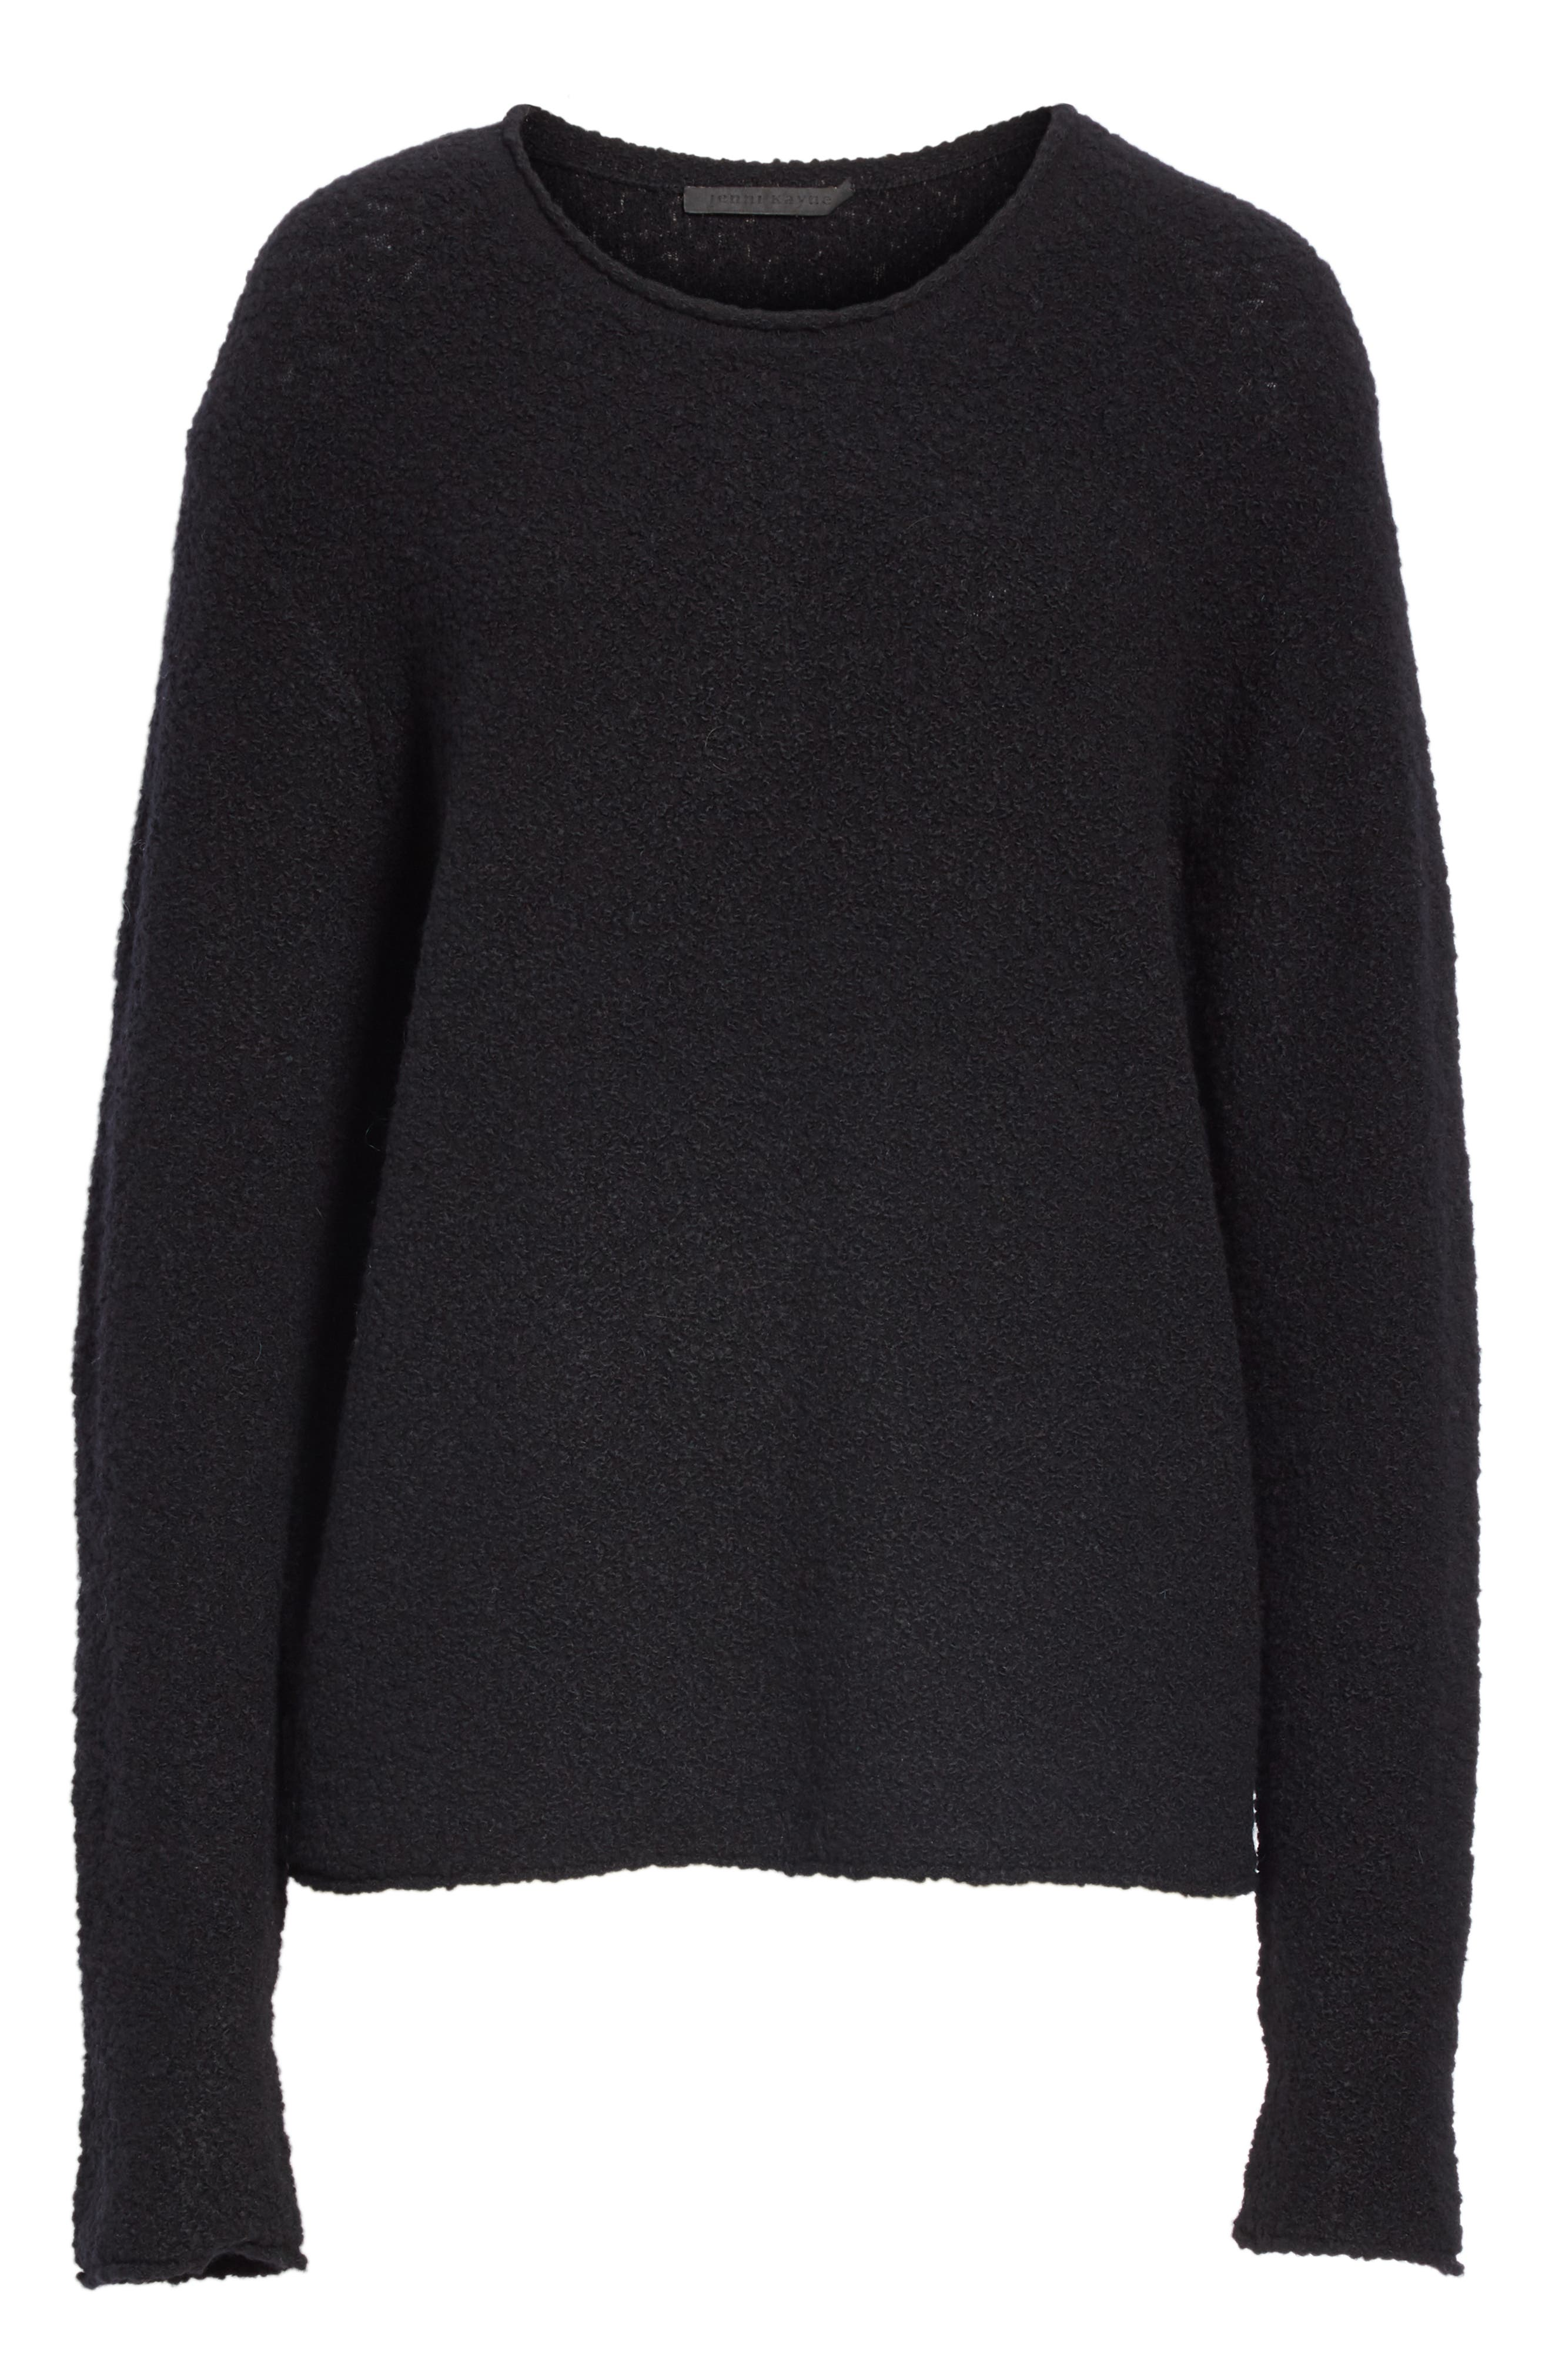 Bouclé Crewneck Sweater,                             Alternate thumbnail 6, color,                             BLACK